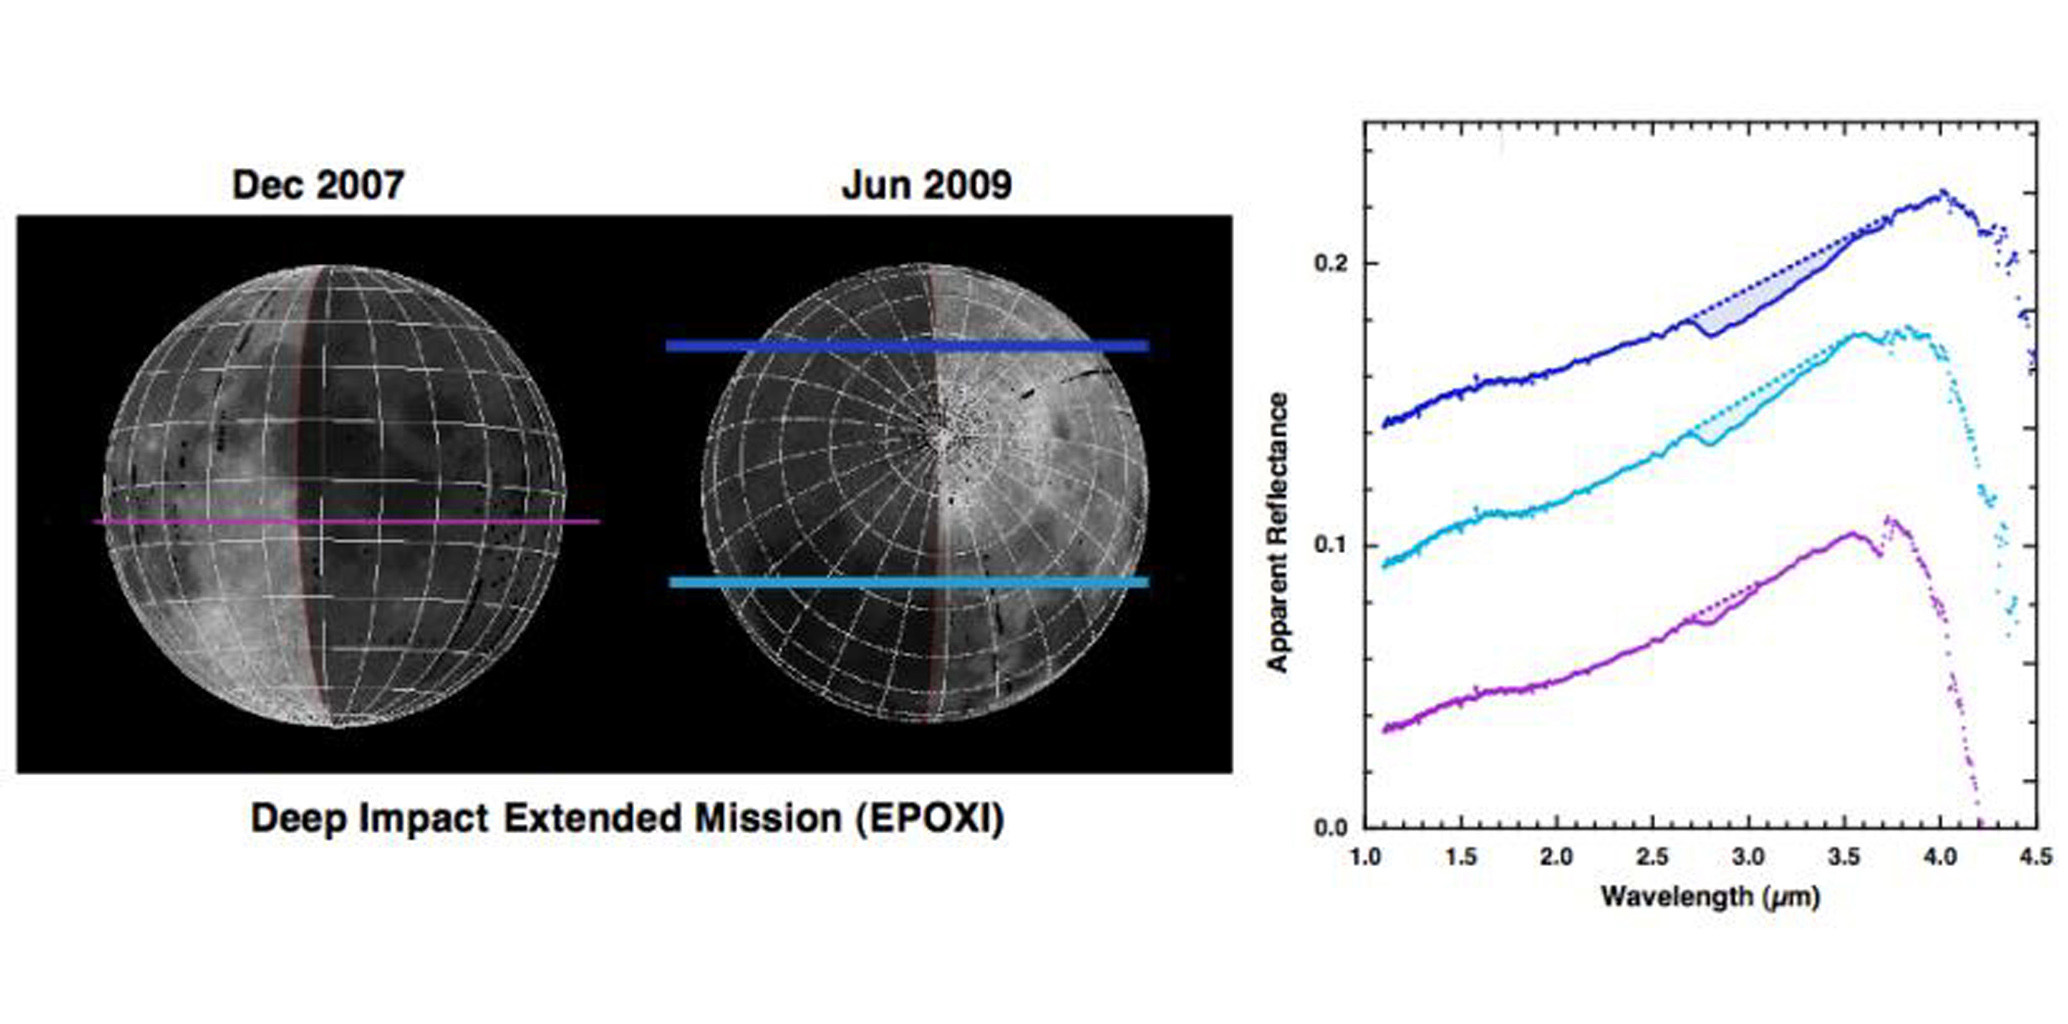 Since successfully carrying out its spectacular impact experiment at comet Tempel 1 on July 4, 2005, the Deep Impact spacecraft observed the moon for calibration purposes on several occasions. In June 2009, the northern polar regions were observed.